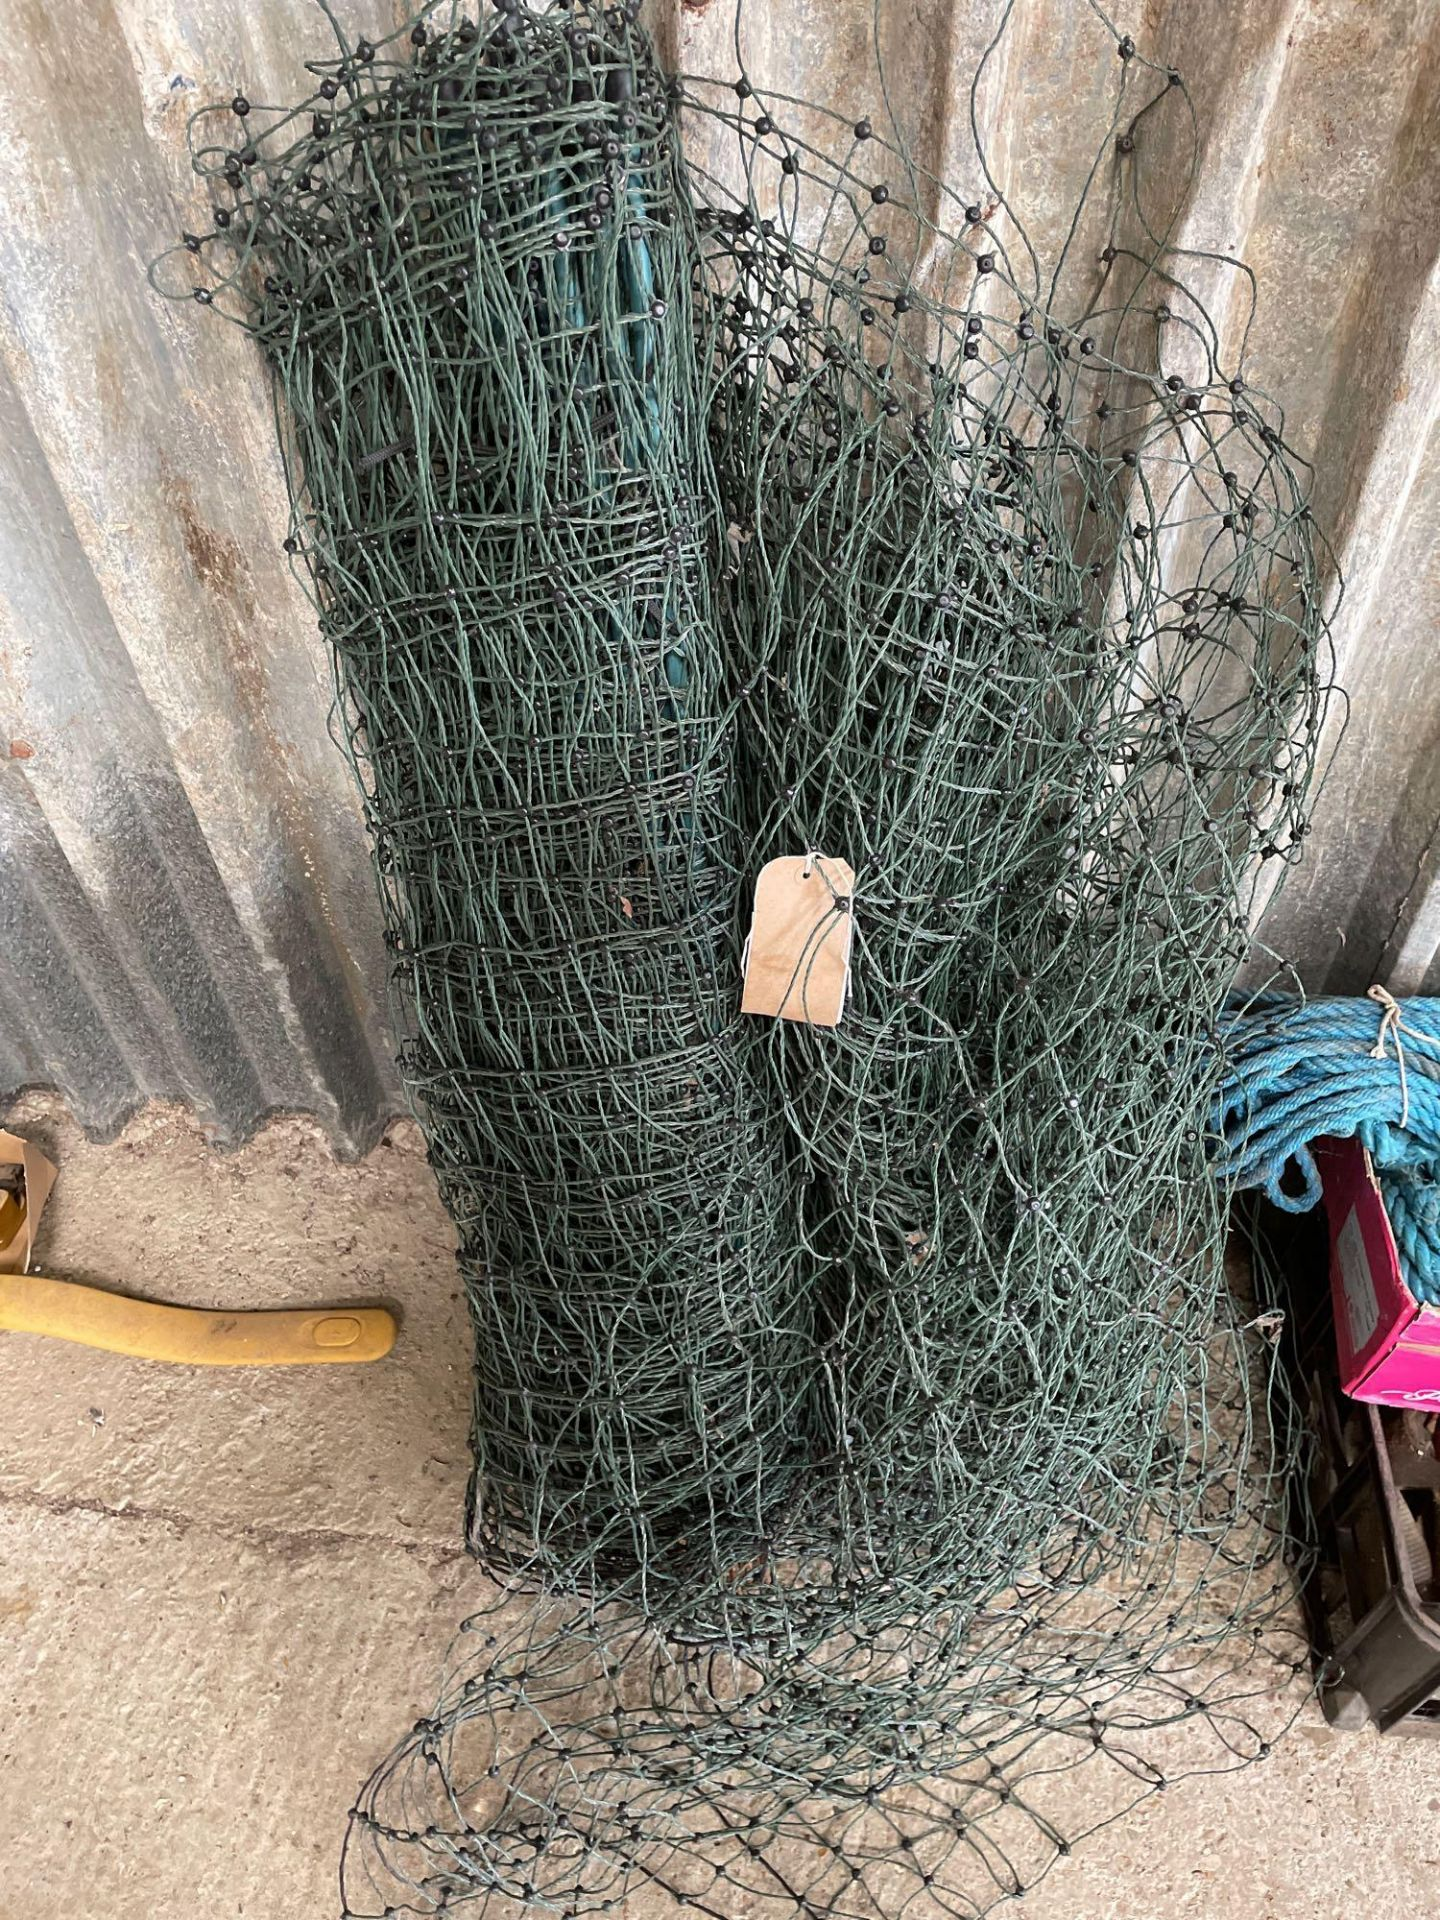 Quantity netting and poles